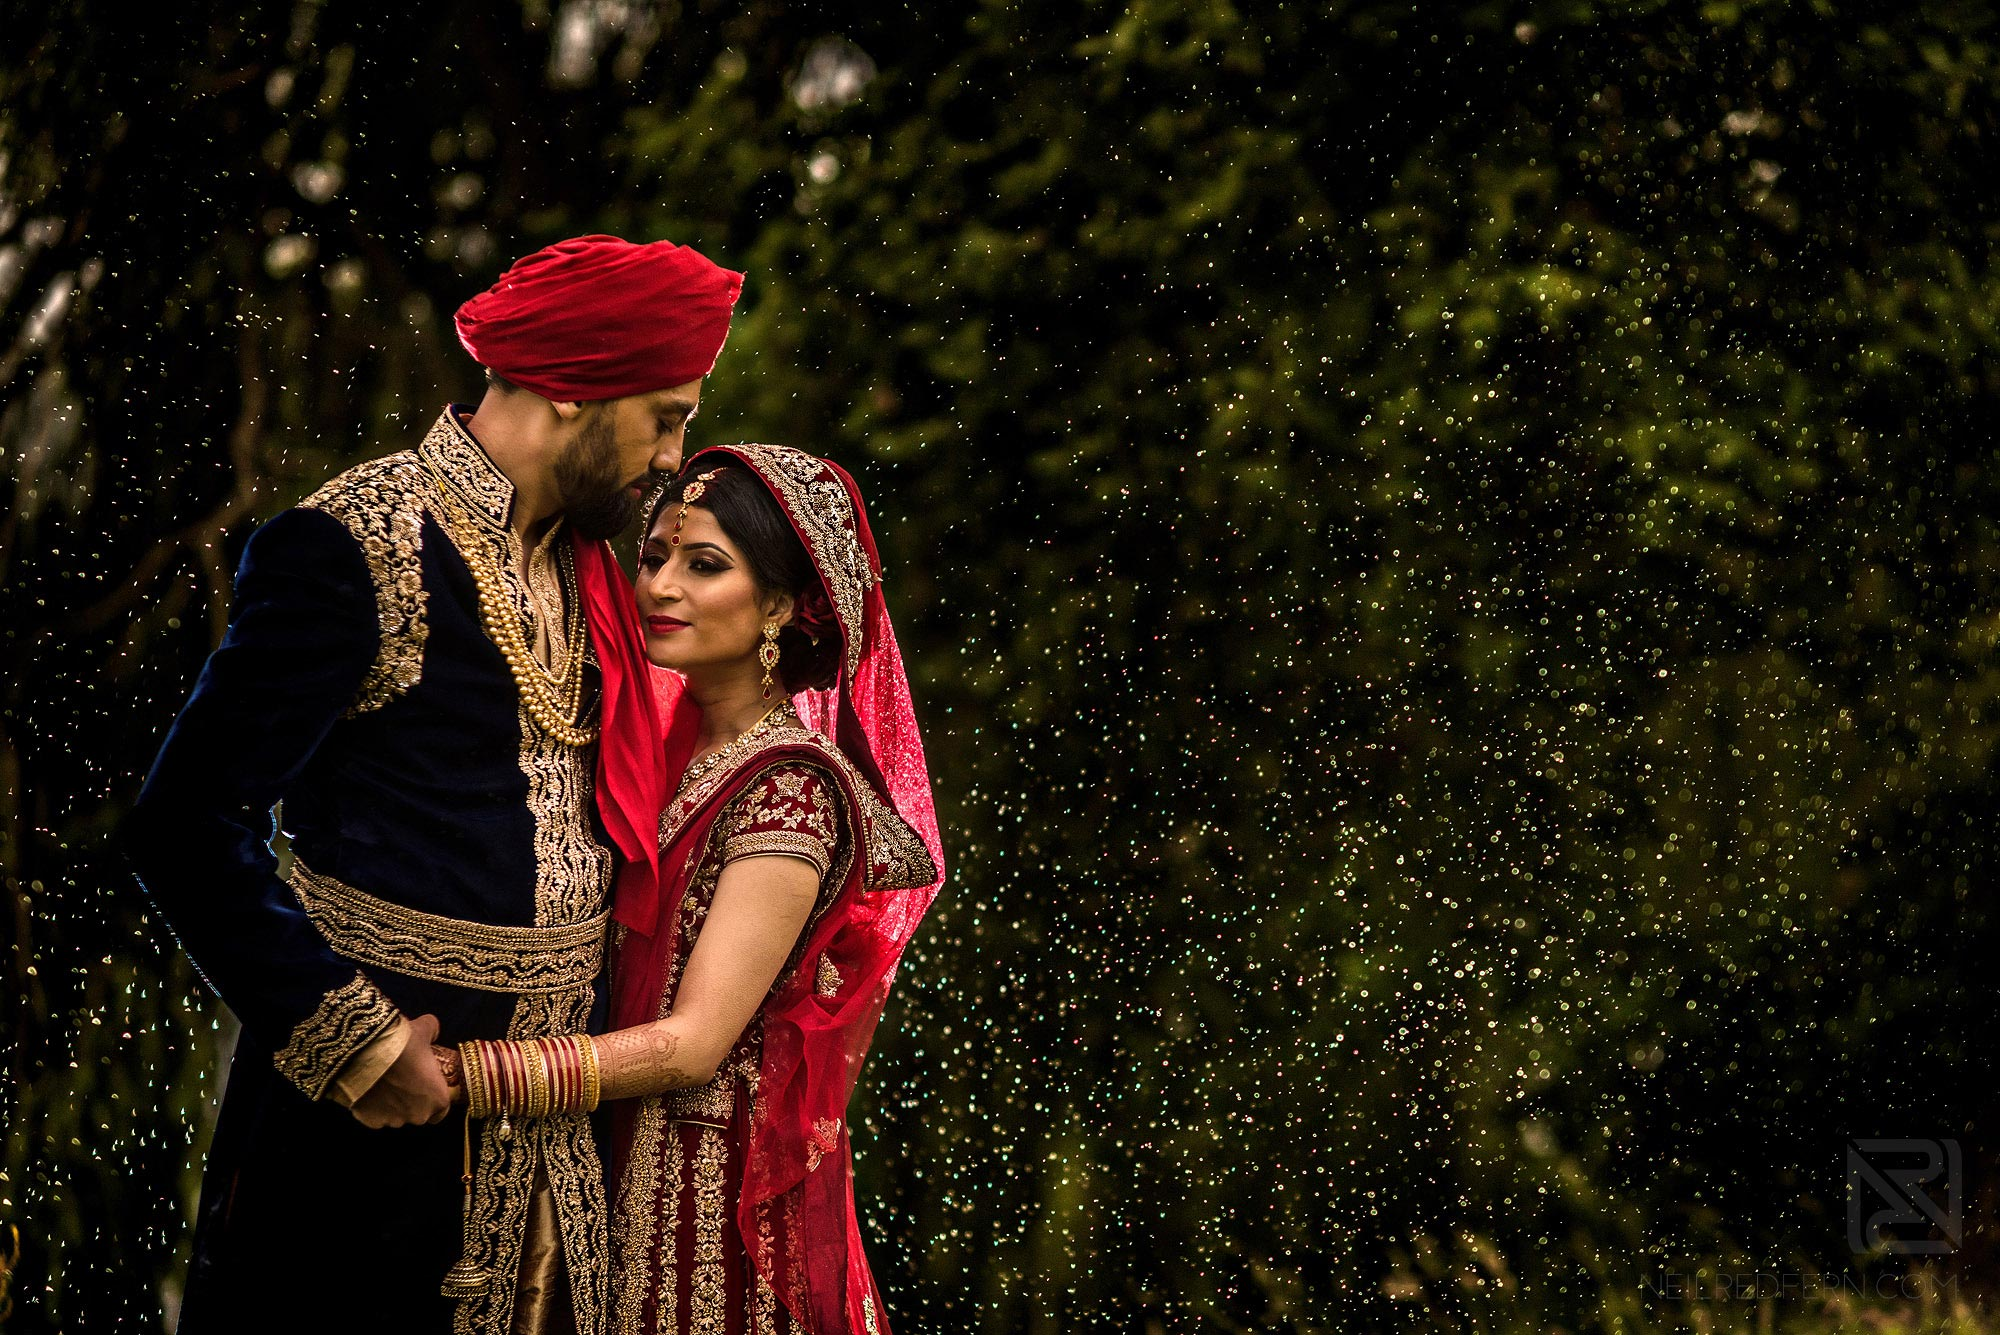 stunning photograph of Indian bride and groom in the rain